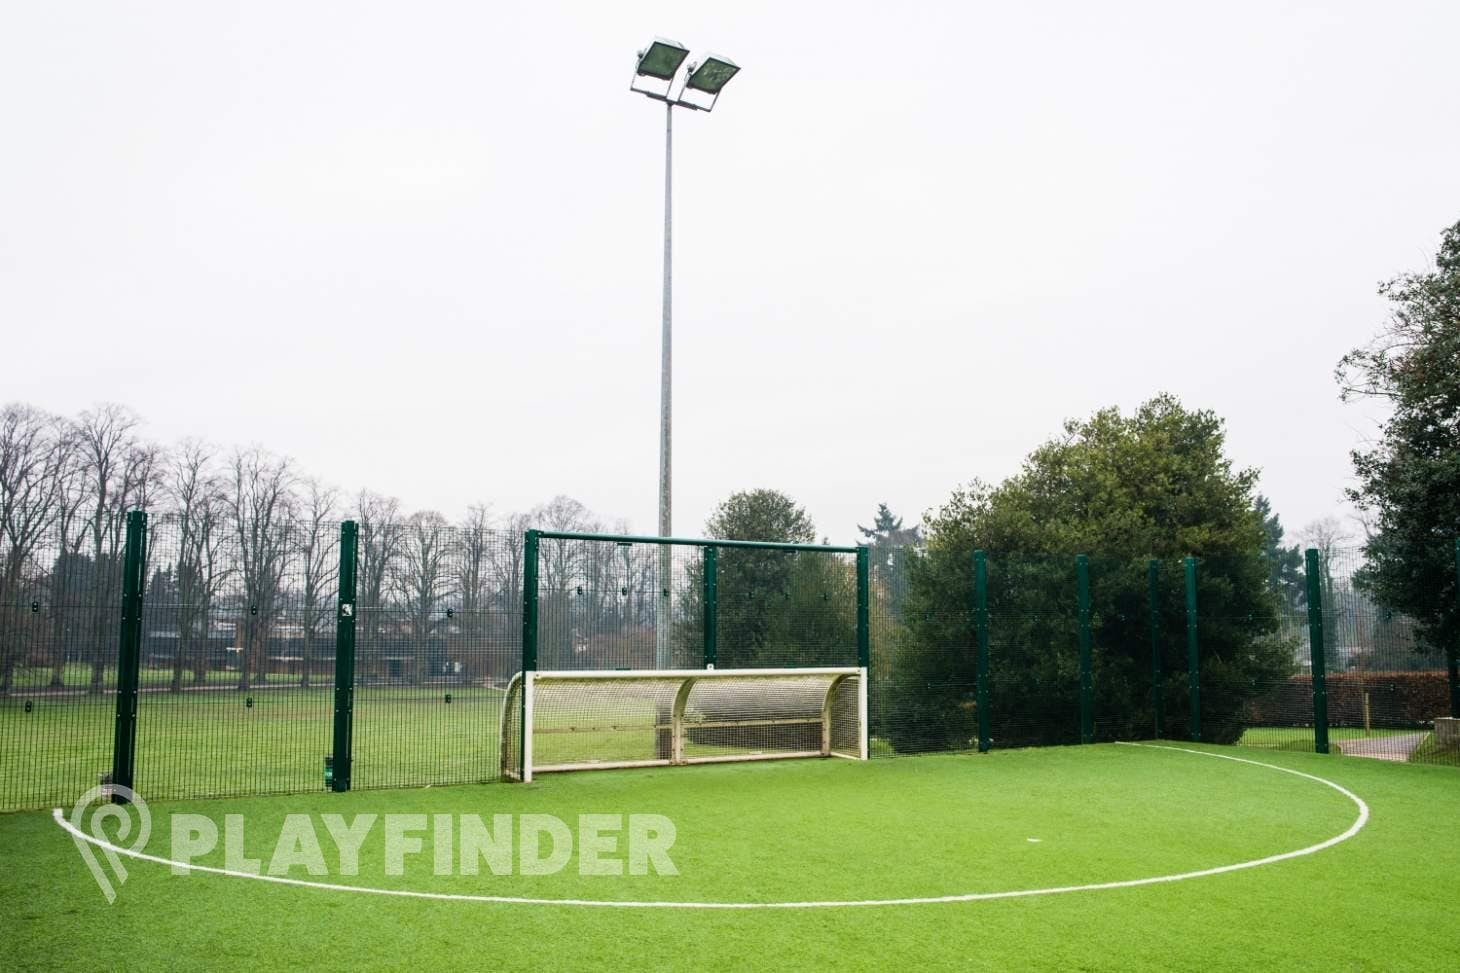 Harpenden Sports Centre 5 a side | 3G Astroturf football pitch